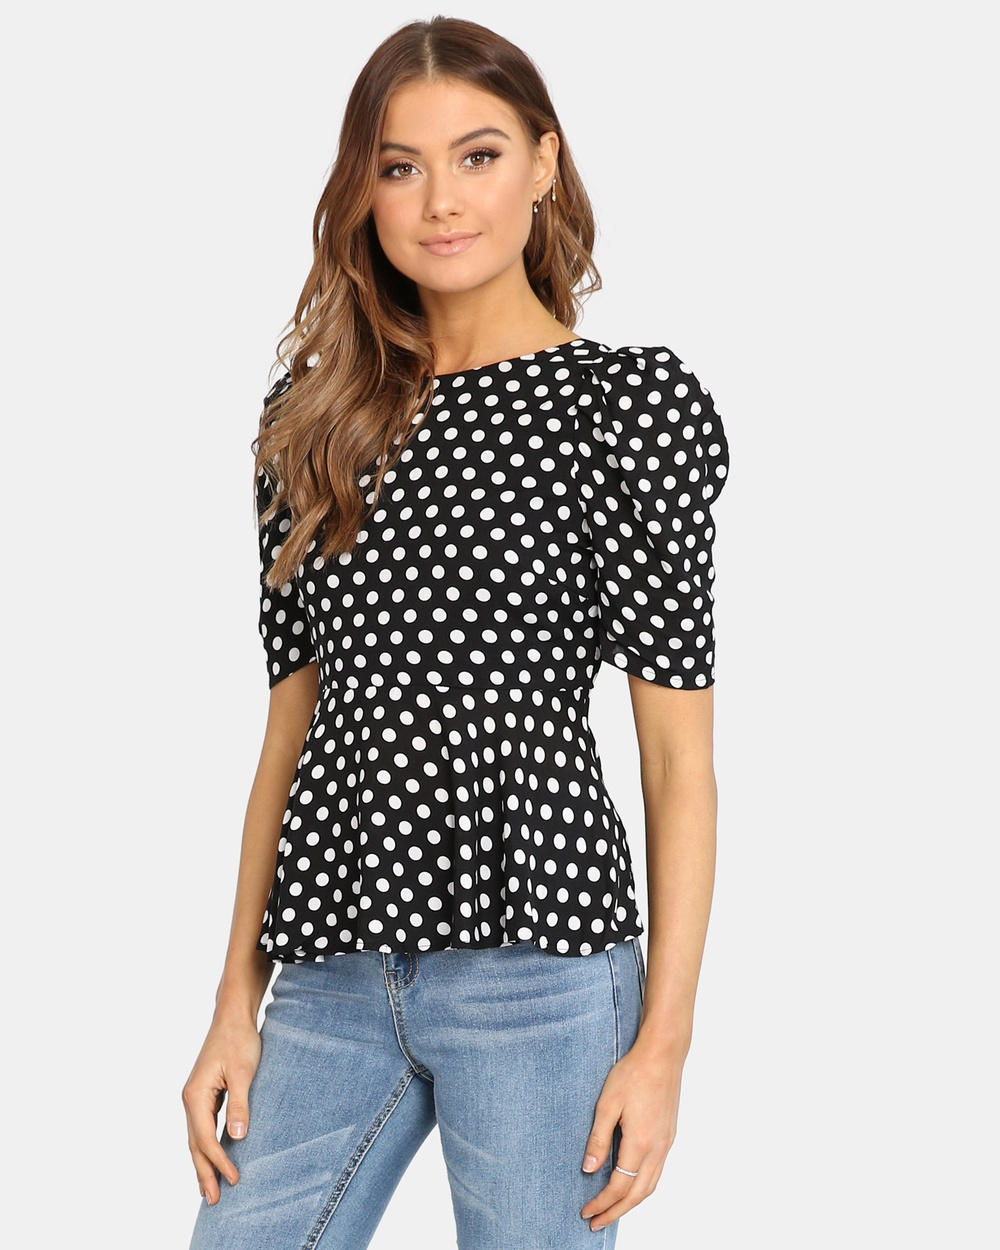 Madison Square Meghan Top Tops Black Meghan Top